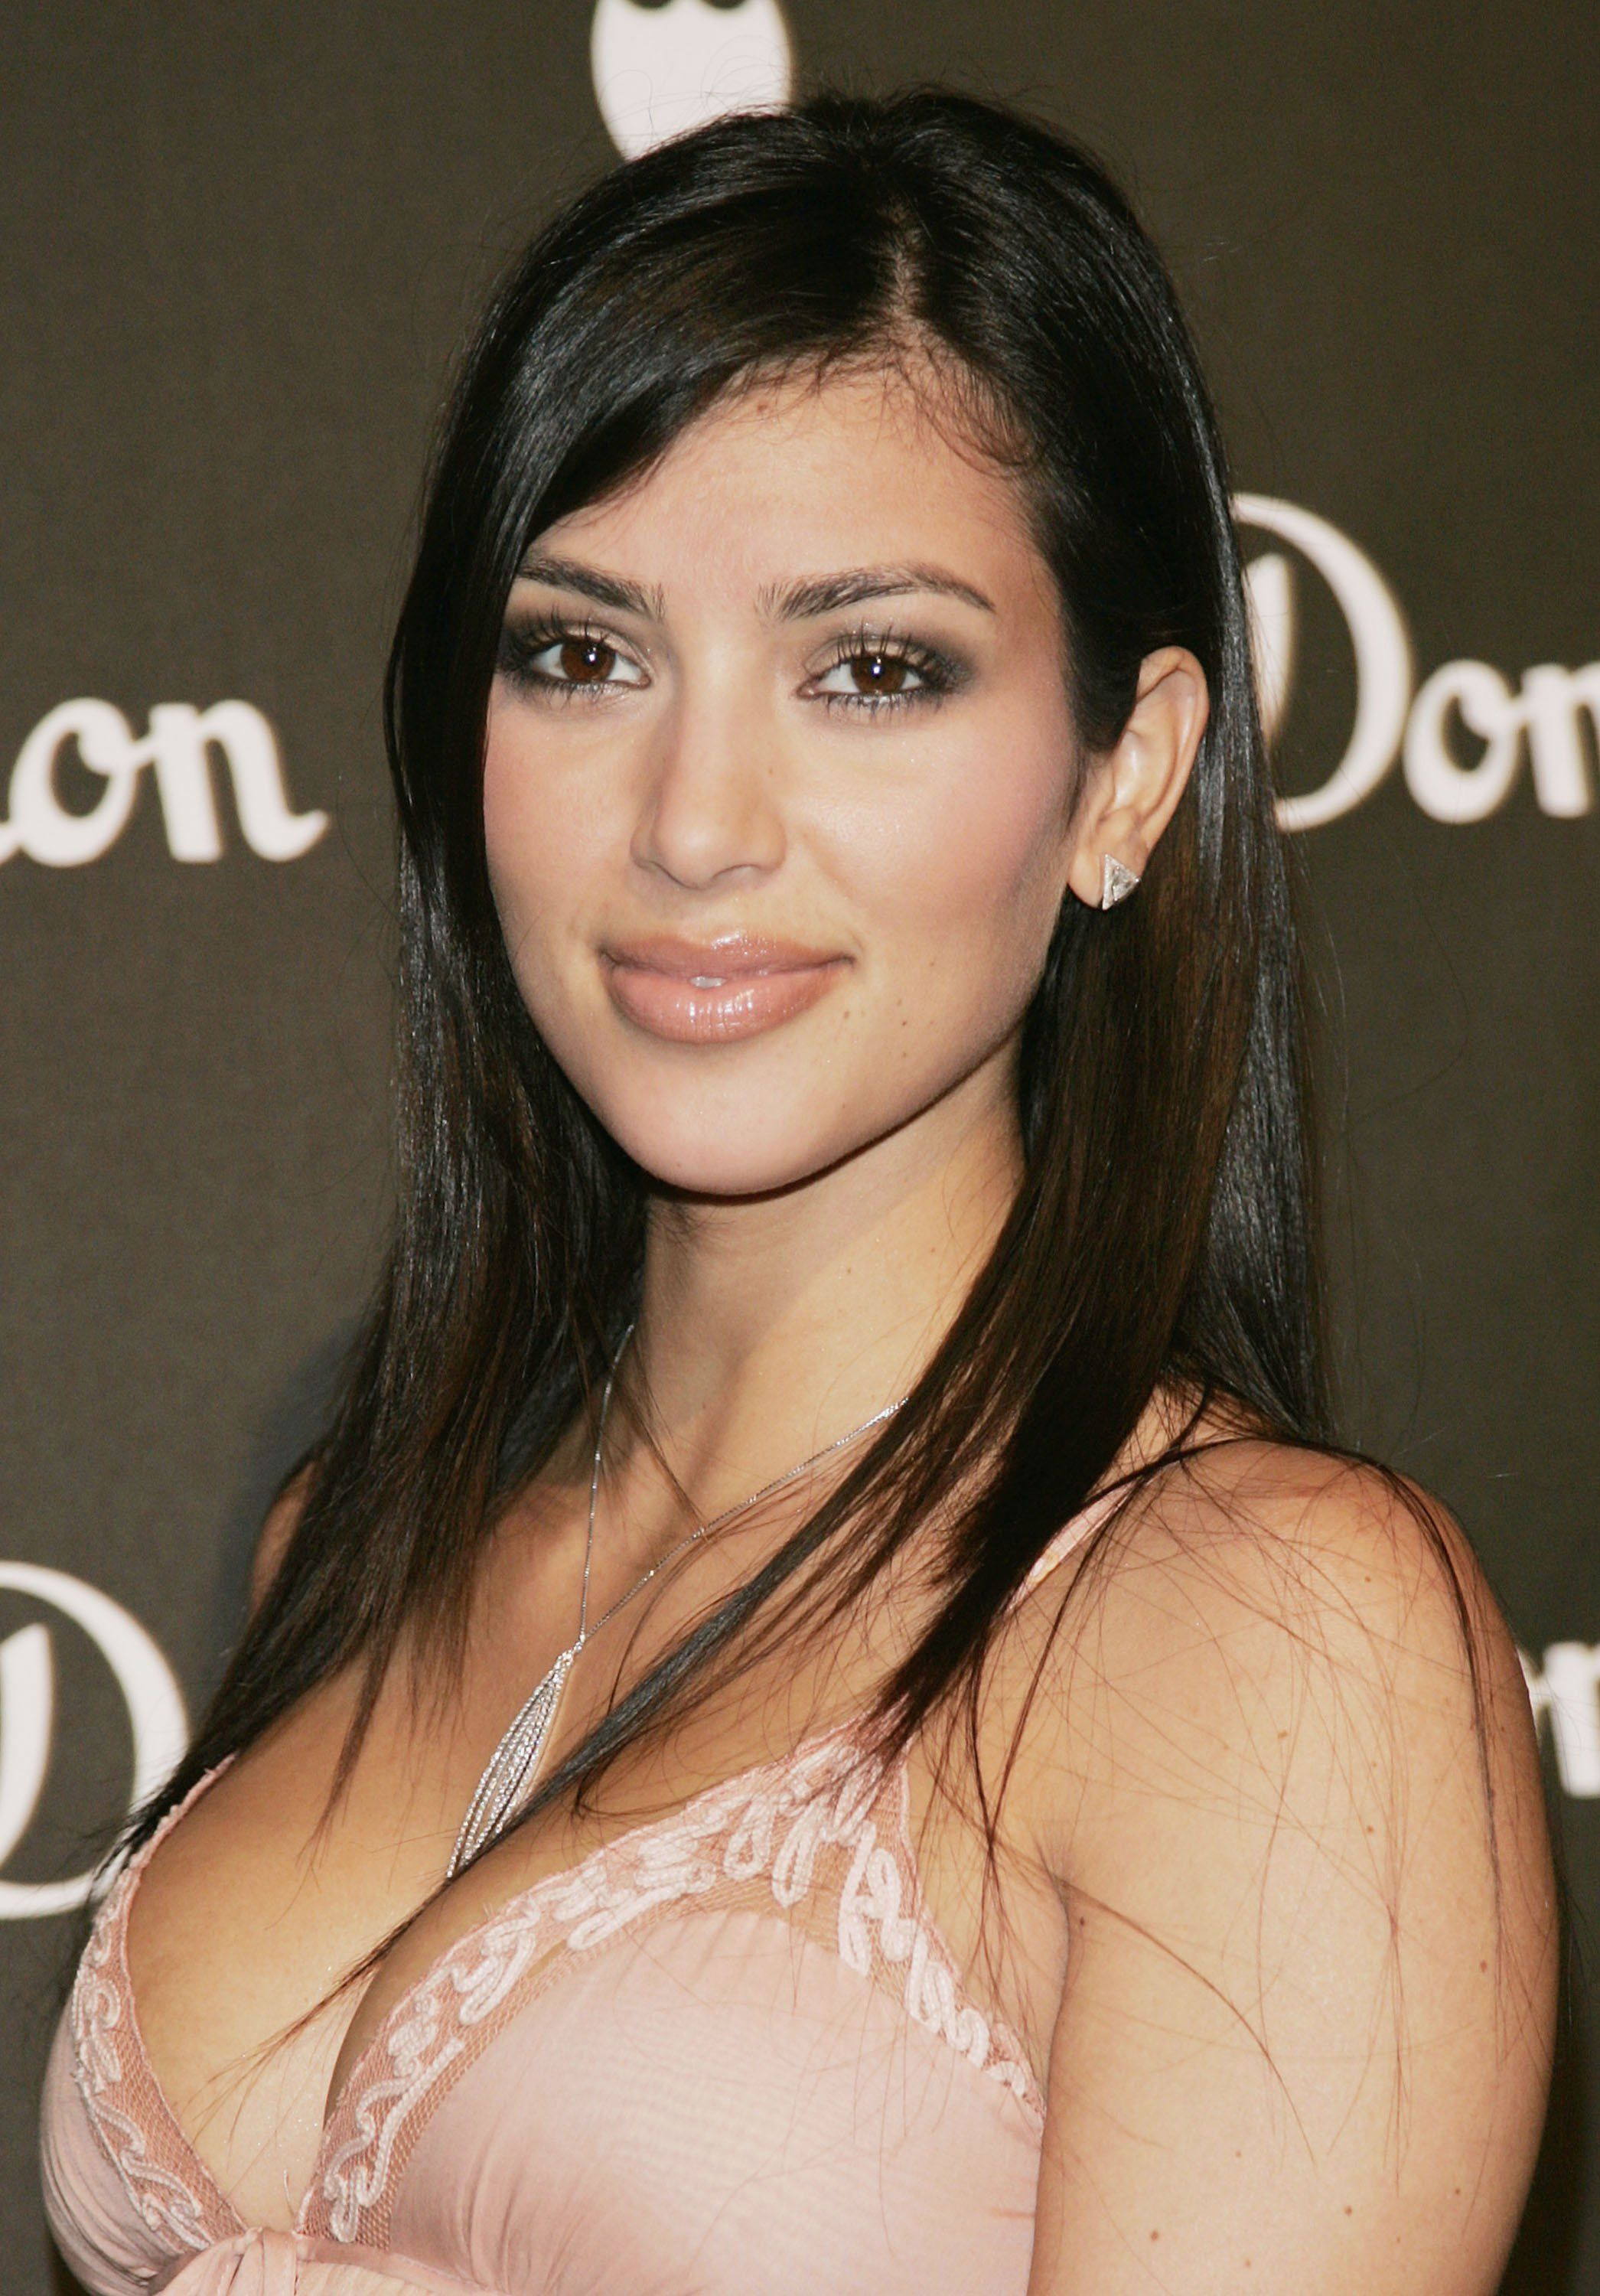 Reality star Kim Kardashian arriving at the International Launch of Dom Perignon Rose Vintage 1996 Champagne on June 2, 2006 in Beverly Hills. | Photo: Getty Images